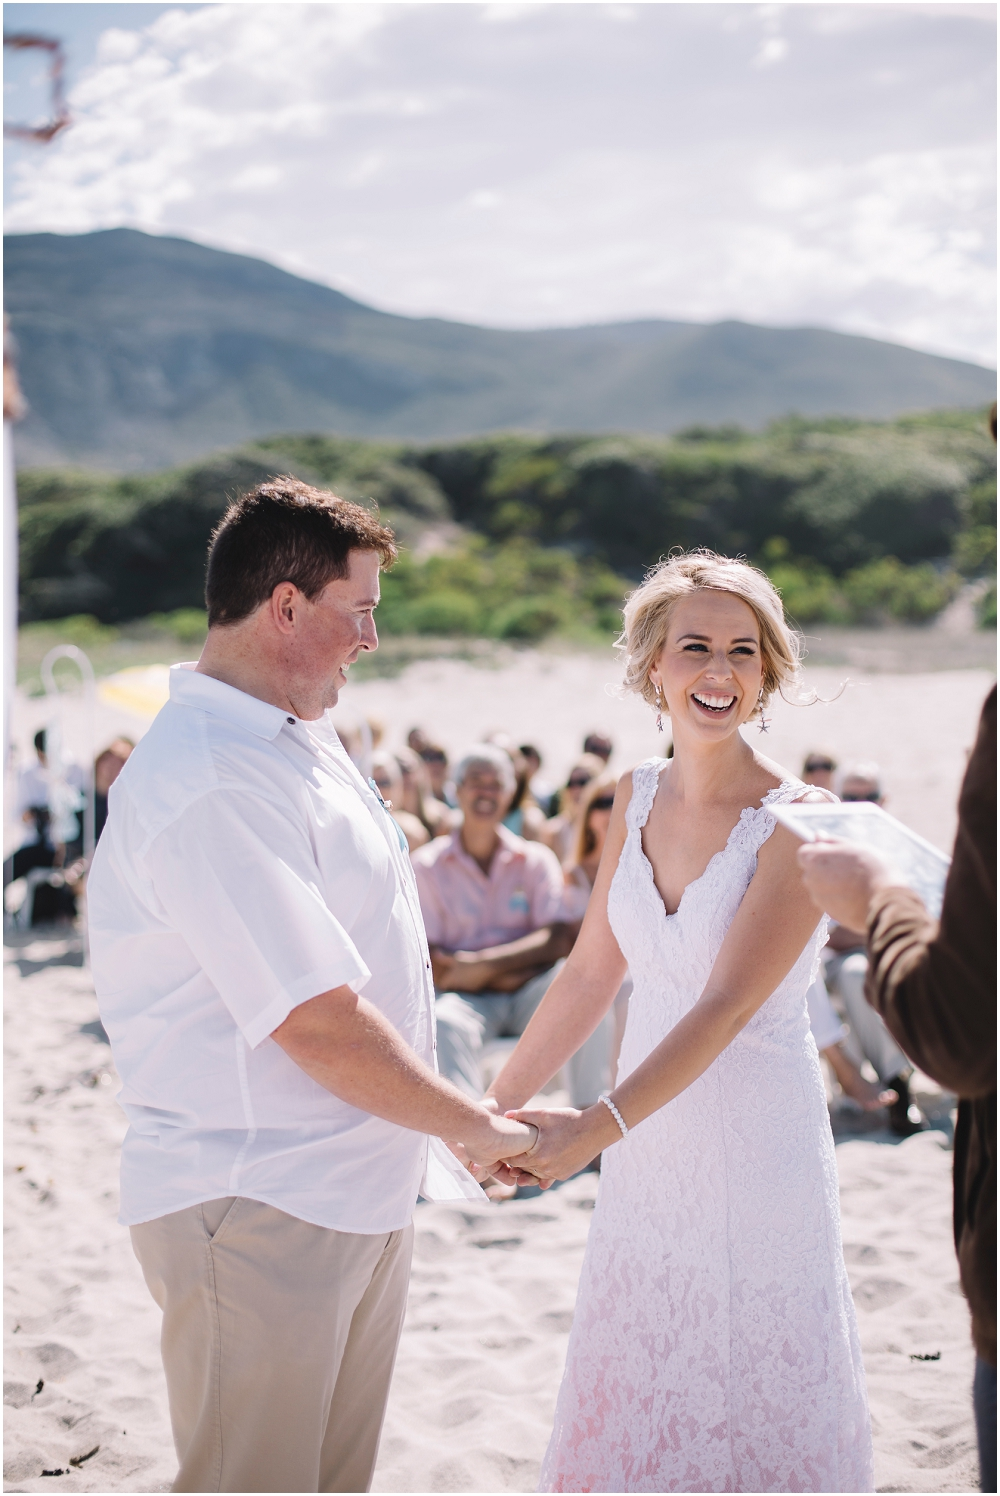 Western Cape Wedding Photographer Ronel Kruger Photography Cape Town_4003.jpg